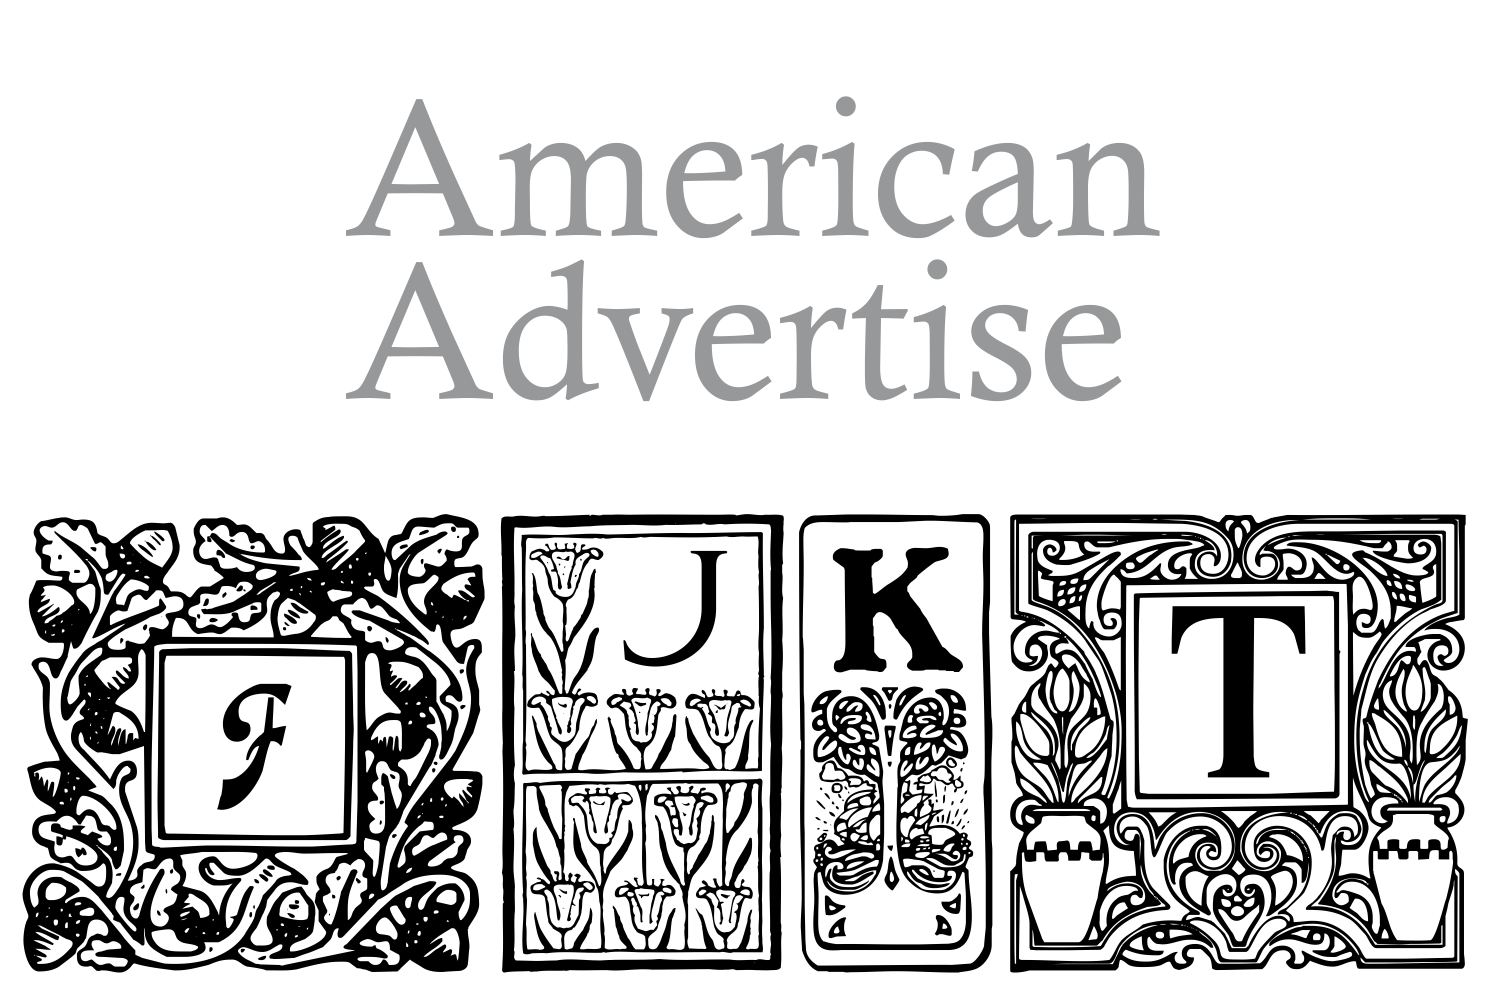 American Advertise (family pack) example image 2